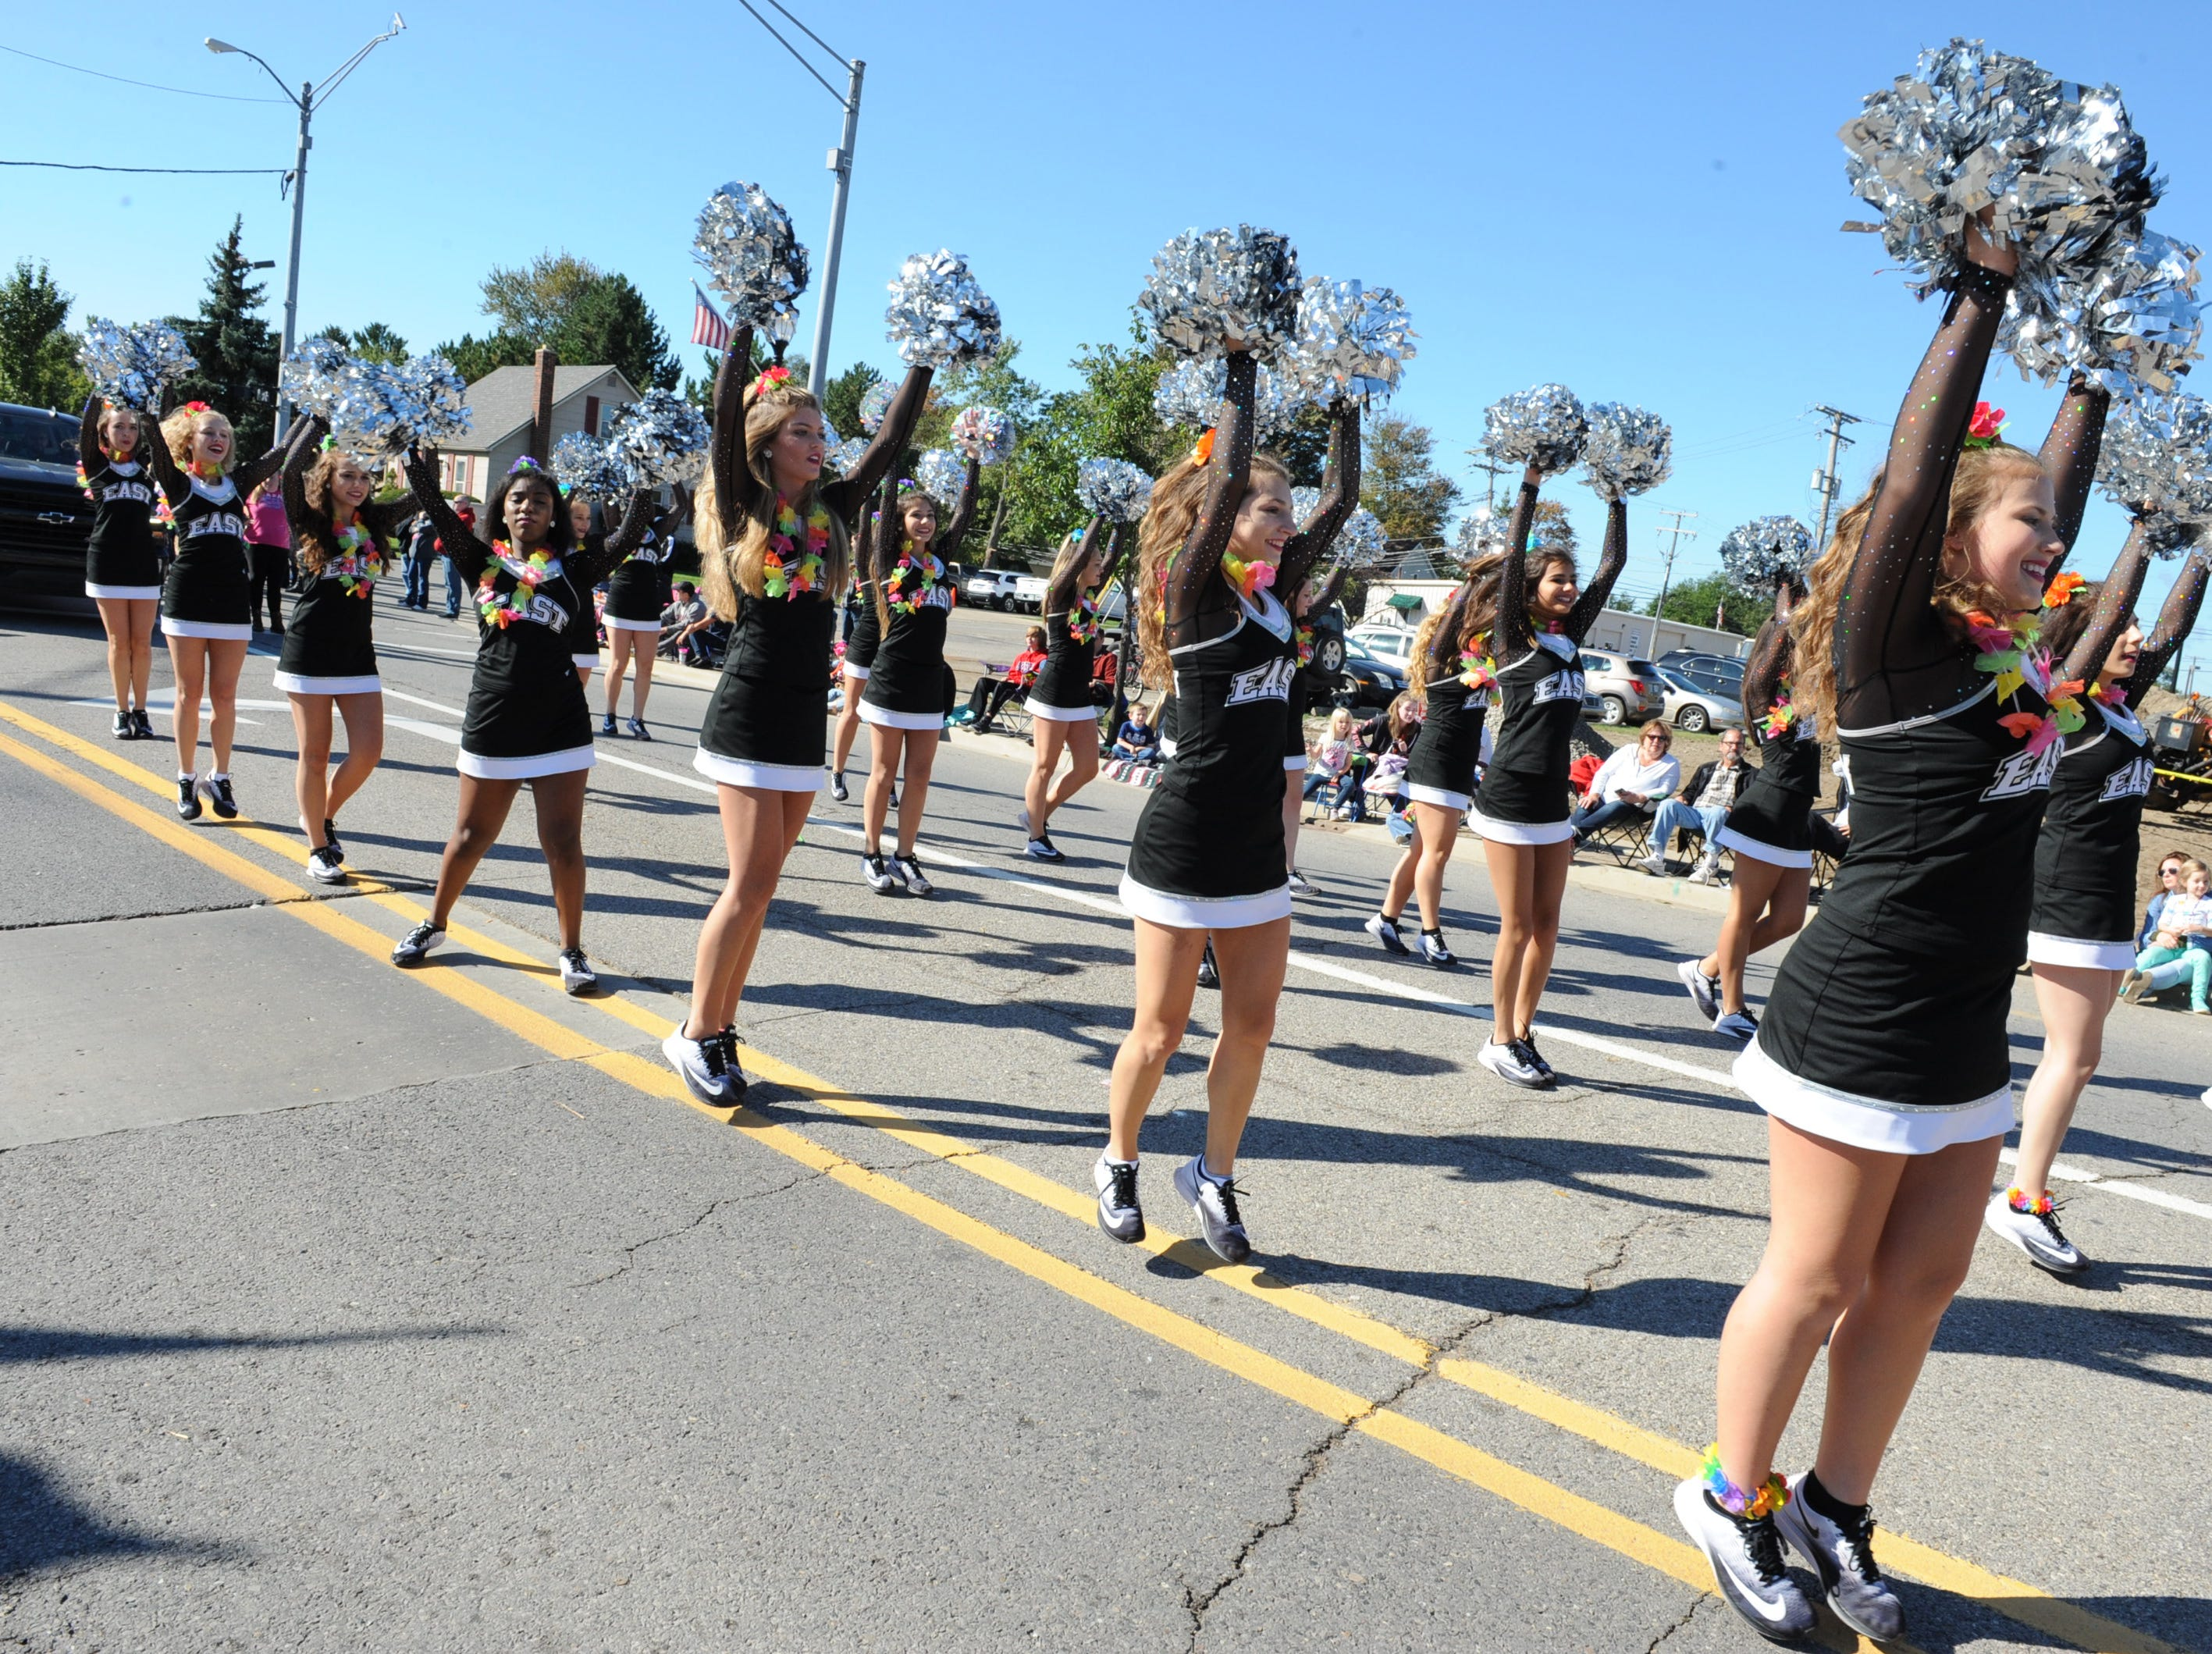 The South Lyon East High School varsity pom team takes part in the Pumpkin Parade held Saturday.